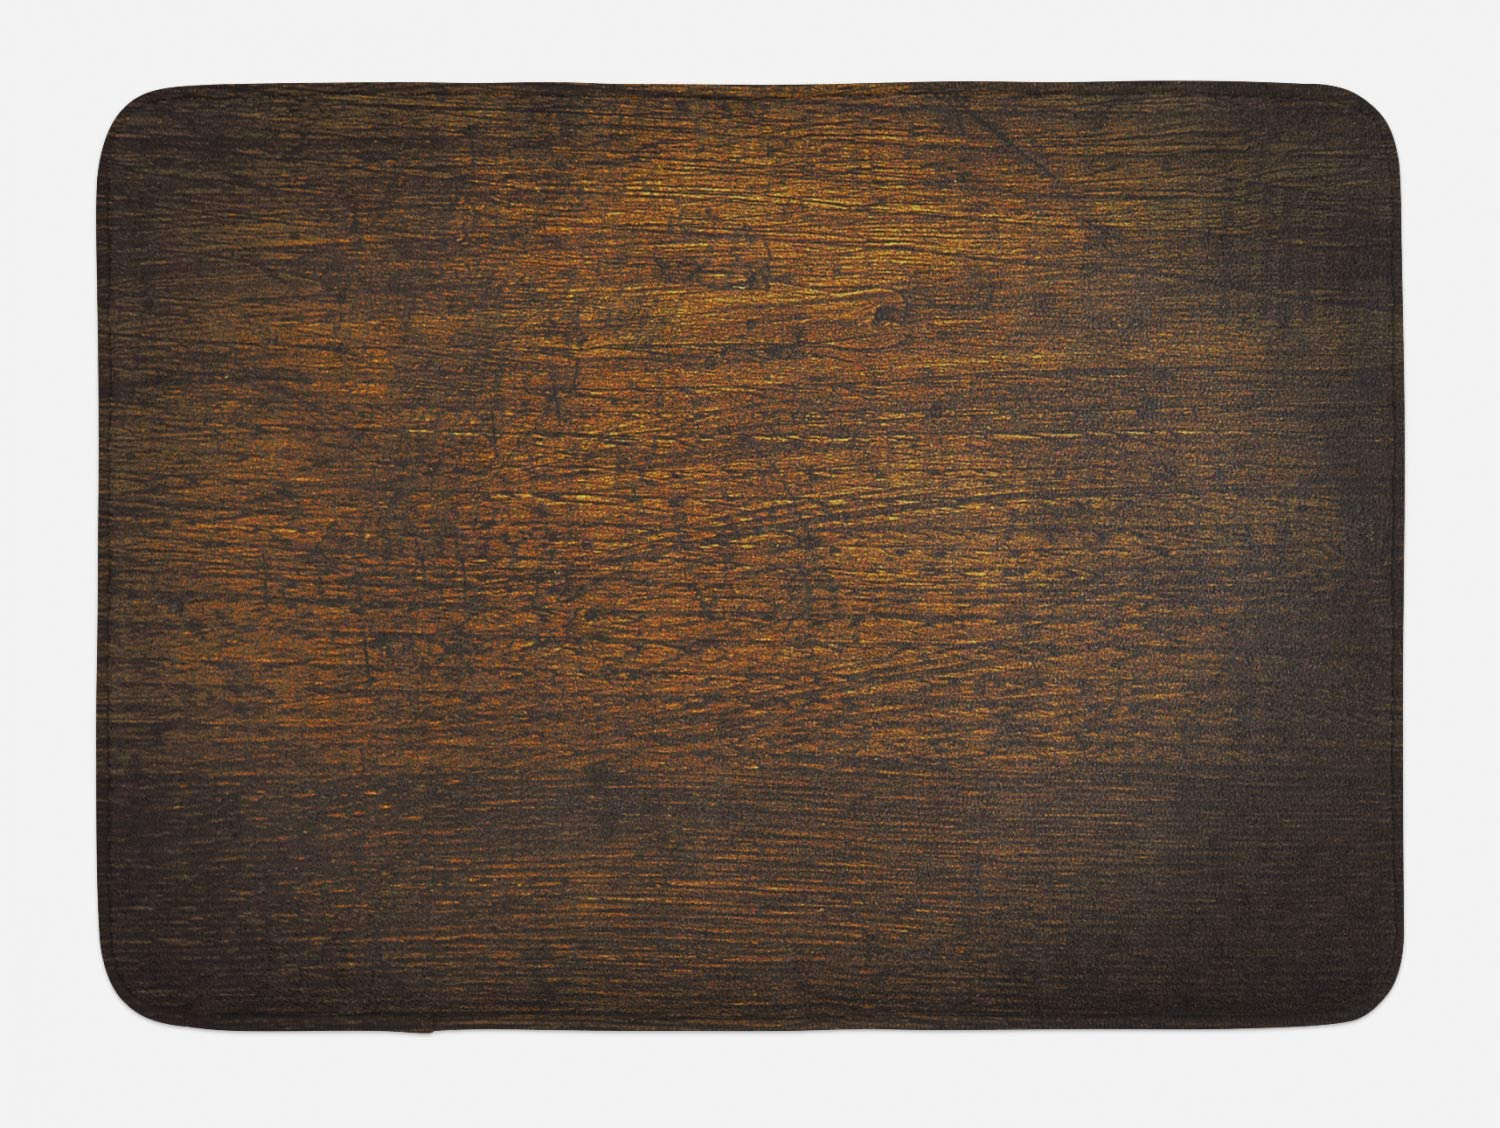 Ambesonne Wooden Bath Mat, Old Vintage Antique Timber Oak Background Rustic Floor Artisan Photo Print, Plush Bathroom Decor Mat with Non Slip Backing, 29.5